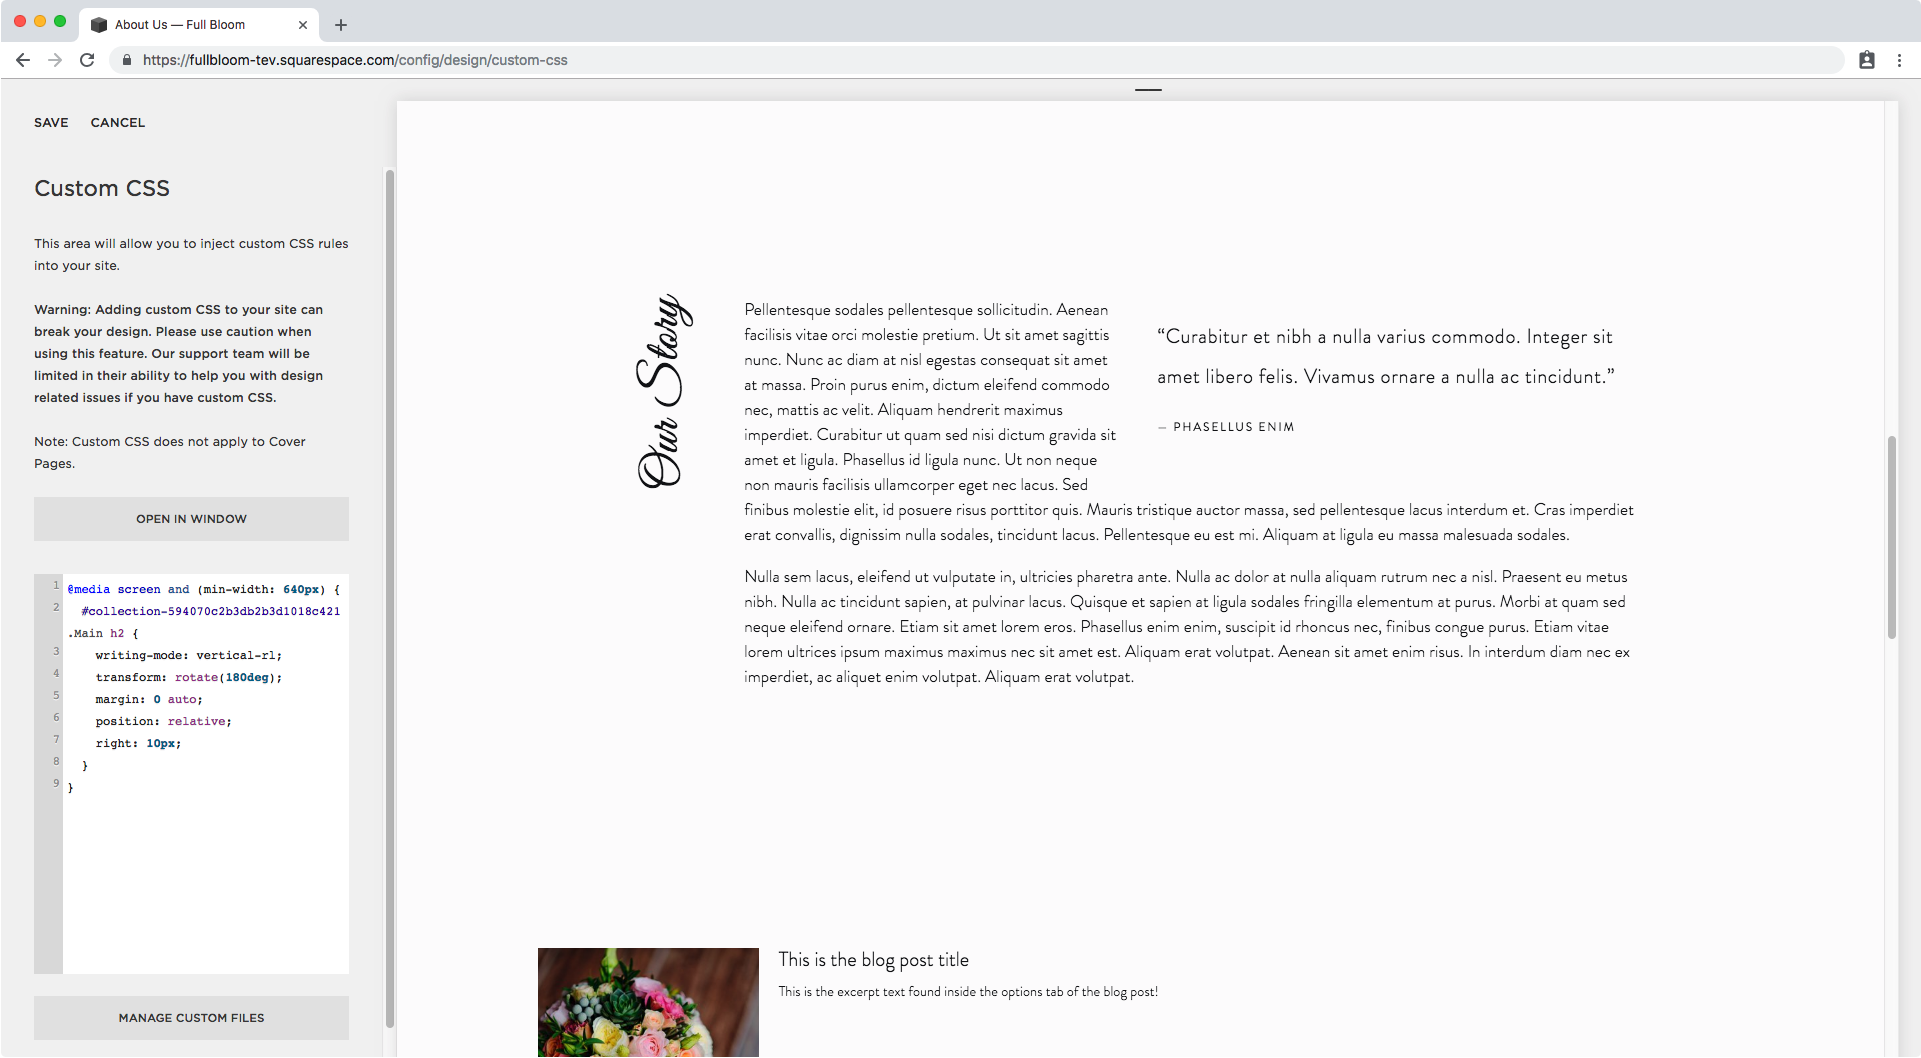 15. Adding media query to vertical text.png